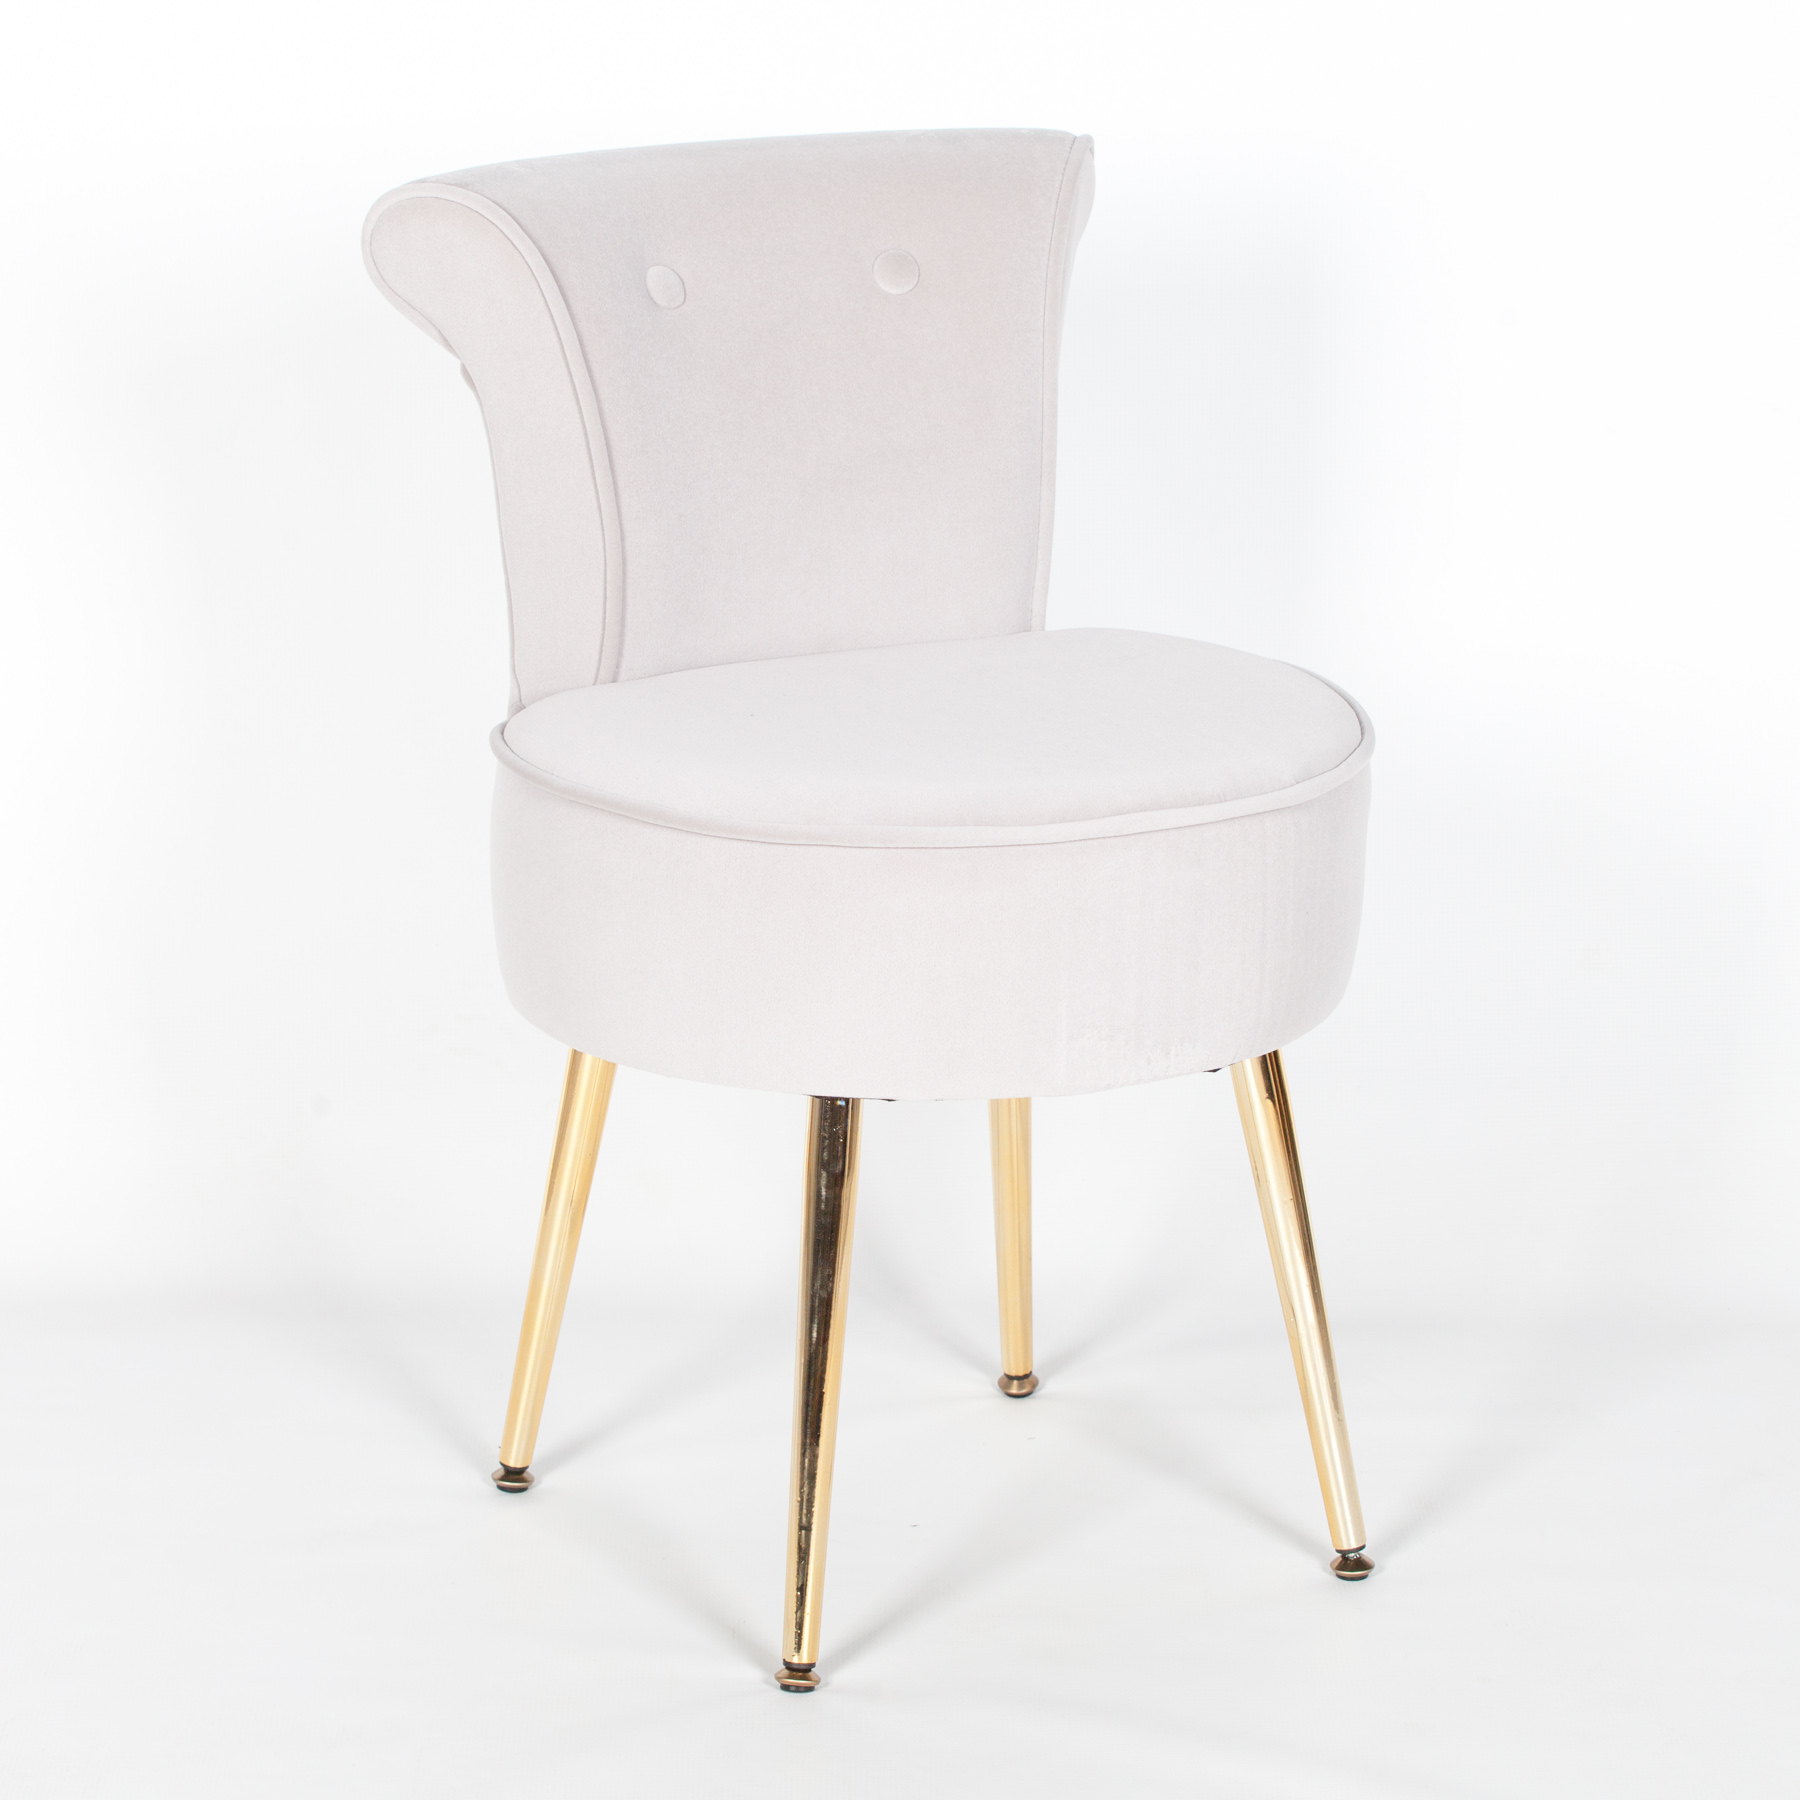 Cool Grey Stool Bedroom Chair With Gold Legs Machost Co Dining Chair Design Ideas Machostcouk